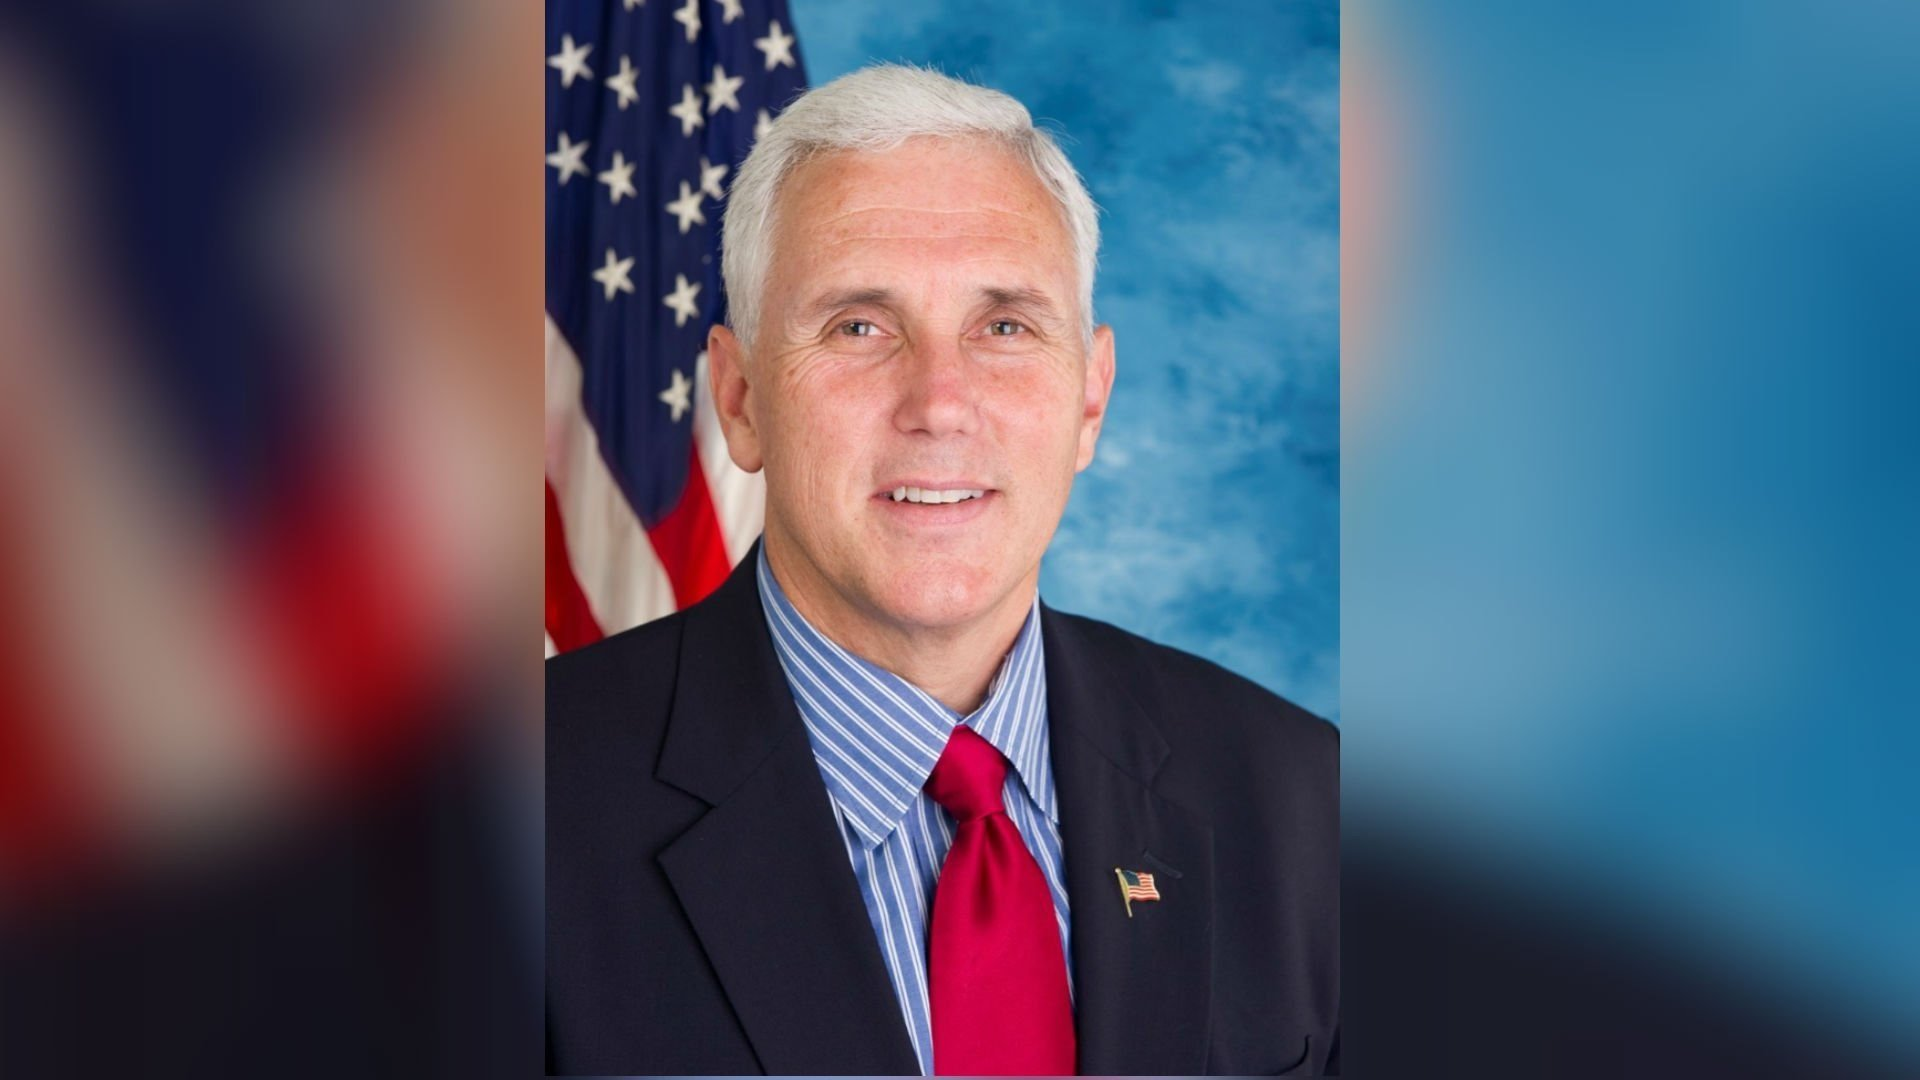 President Pence accidentally hits boy in the face